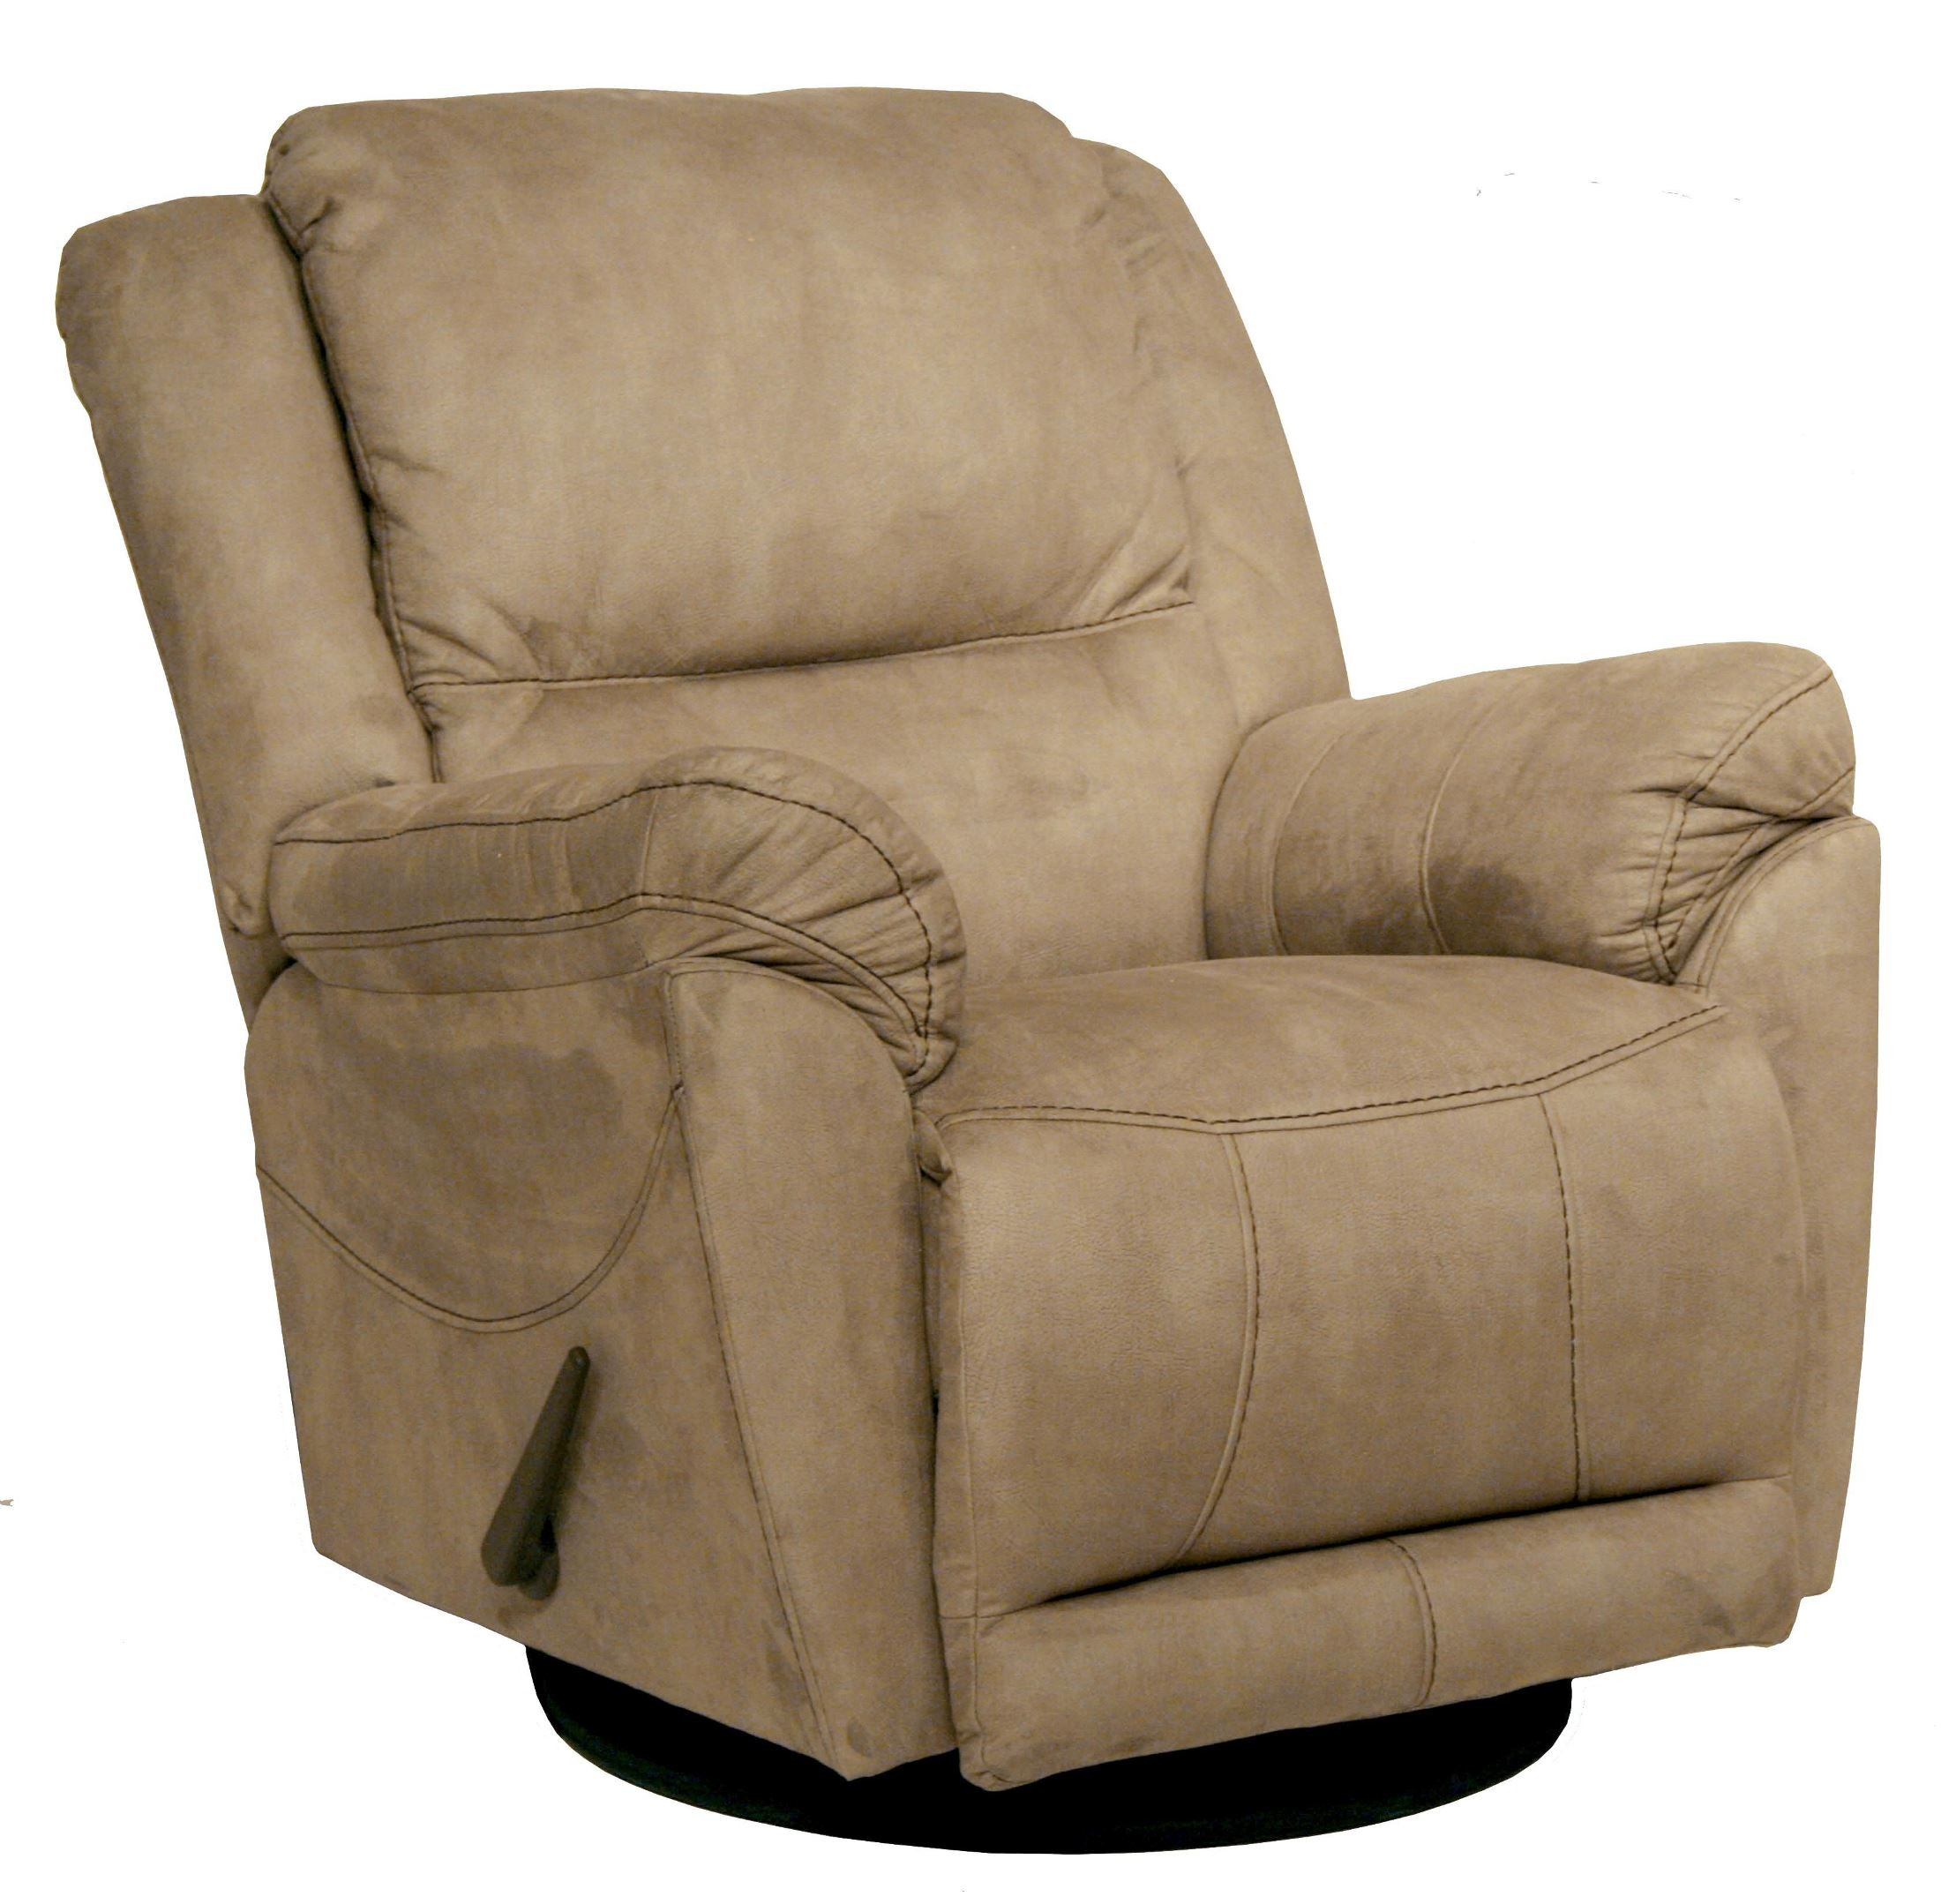 Maverick stone swivel glider recliner from catnapper for Catnapper cloud nine chaise recliner